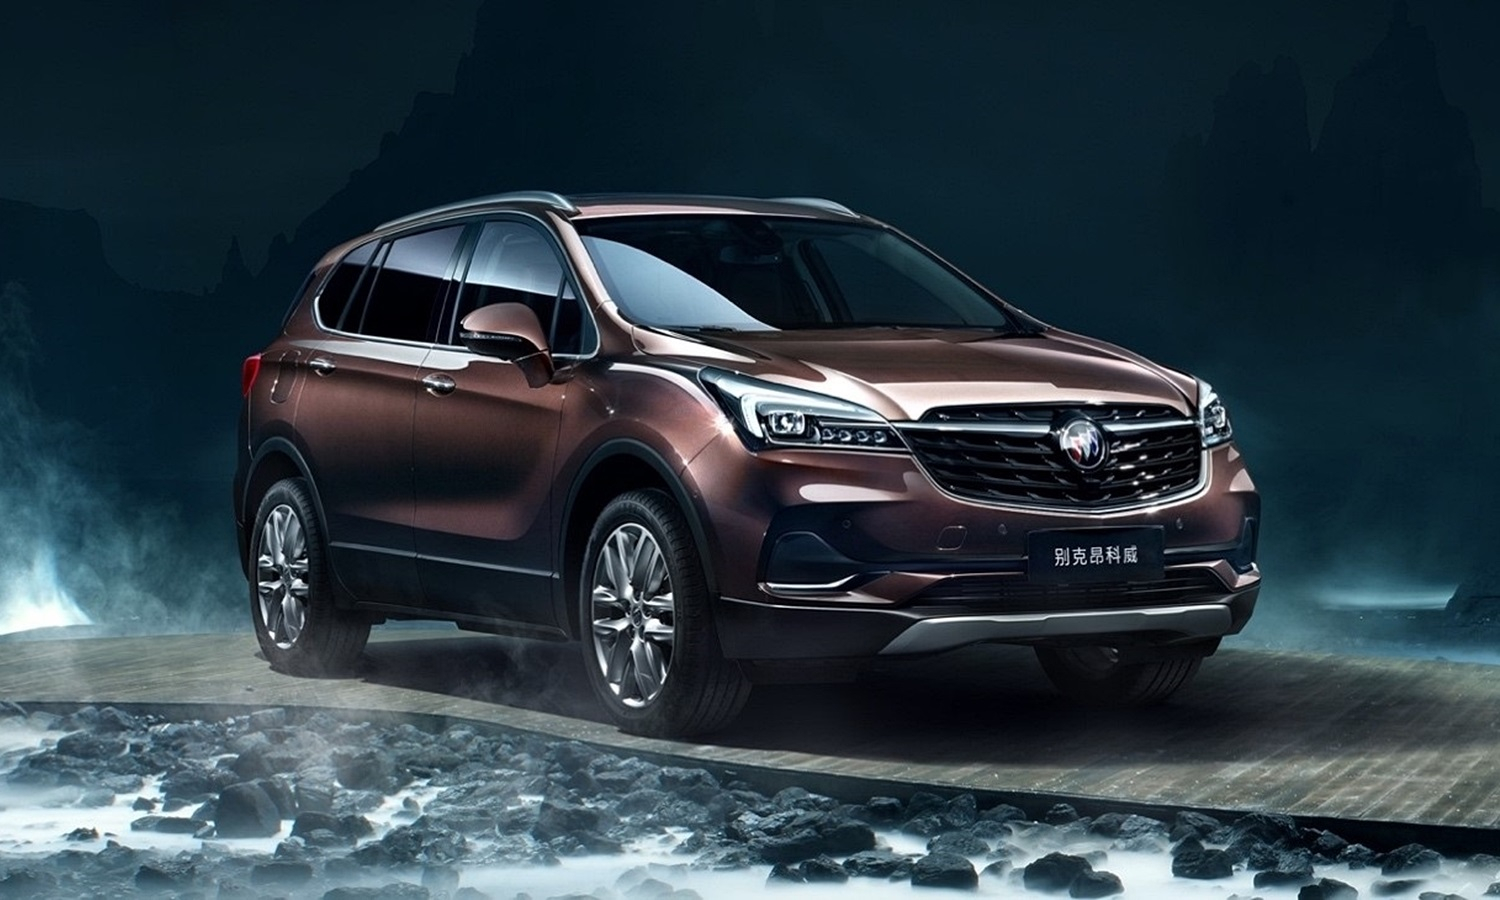 Buick Envision Set For Refresh This Year | Gm Authority New 2022 Buick Envision Lease Deals, Interior Dimensions, Engine